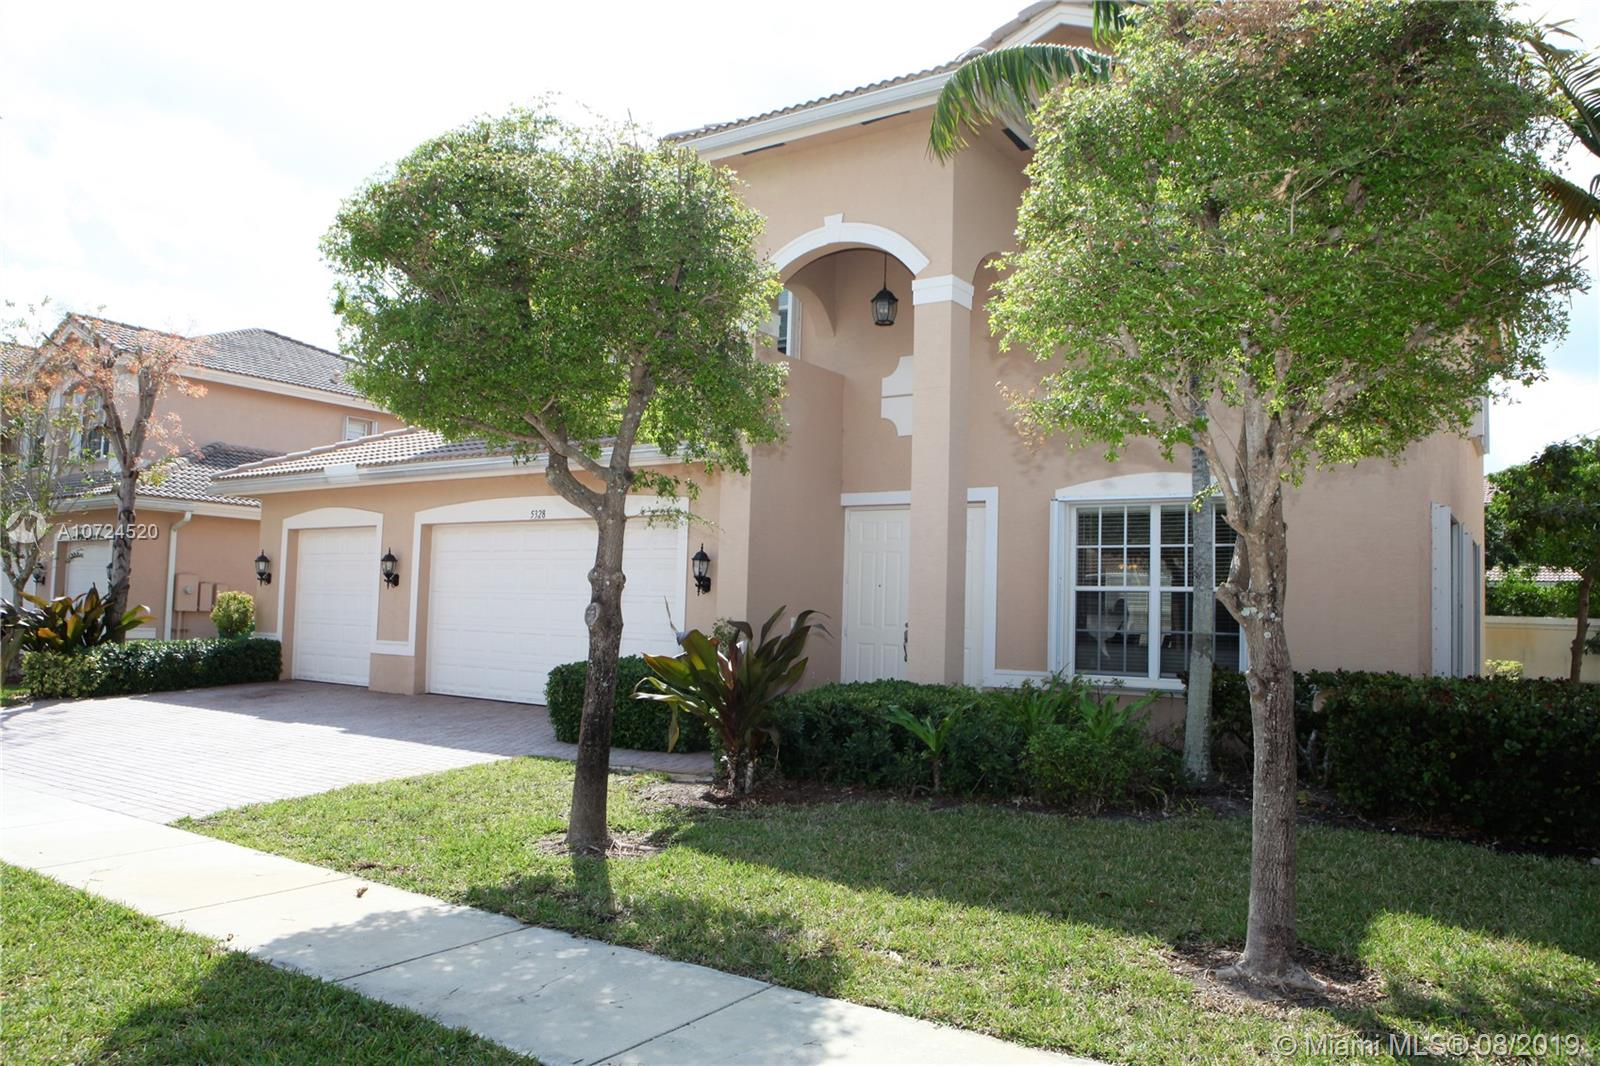 5328 SW 183rd Ave -1